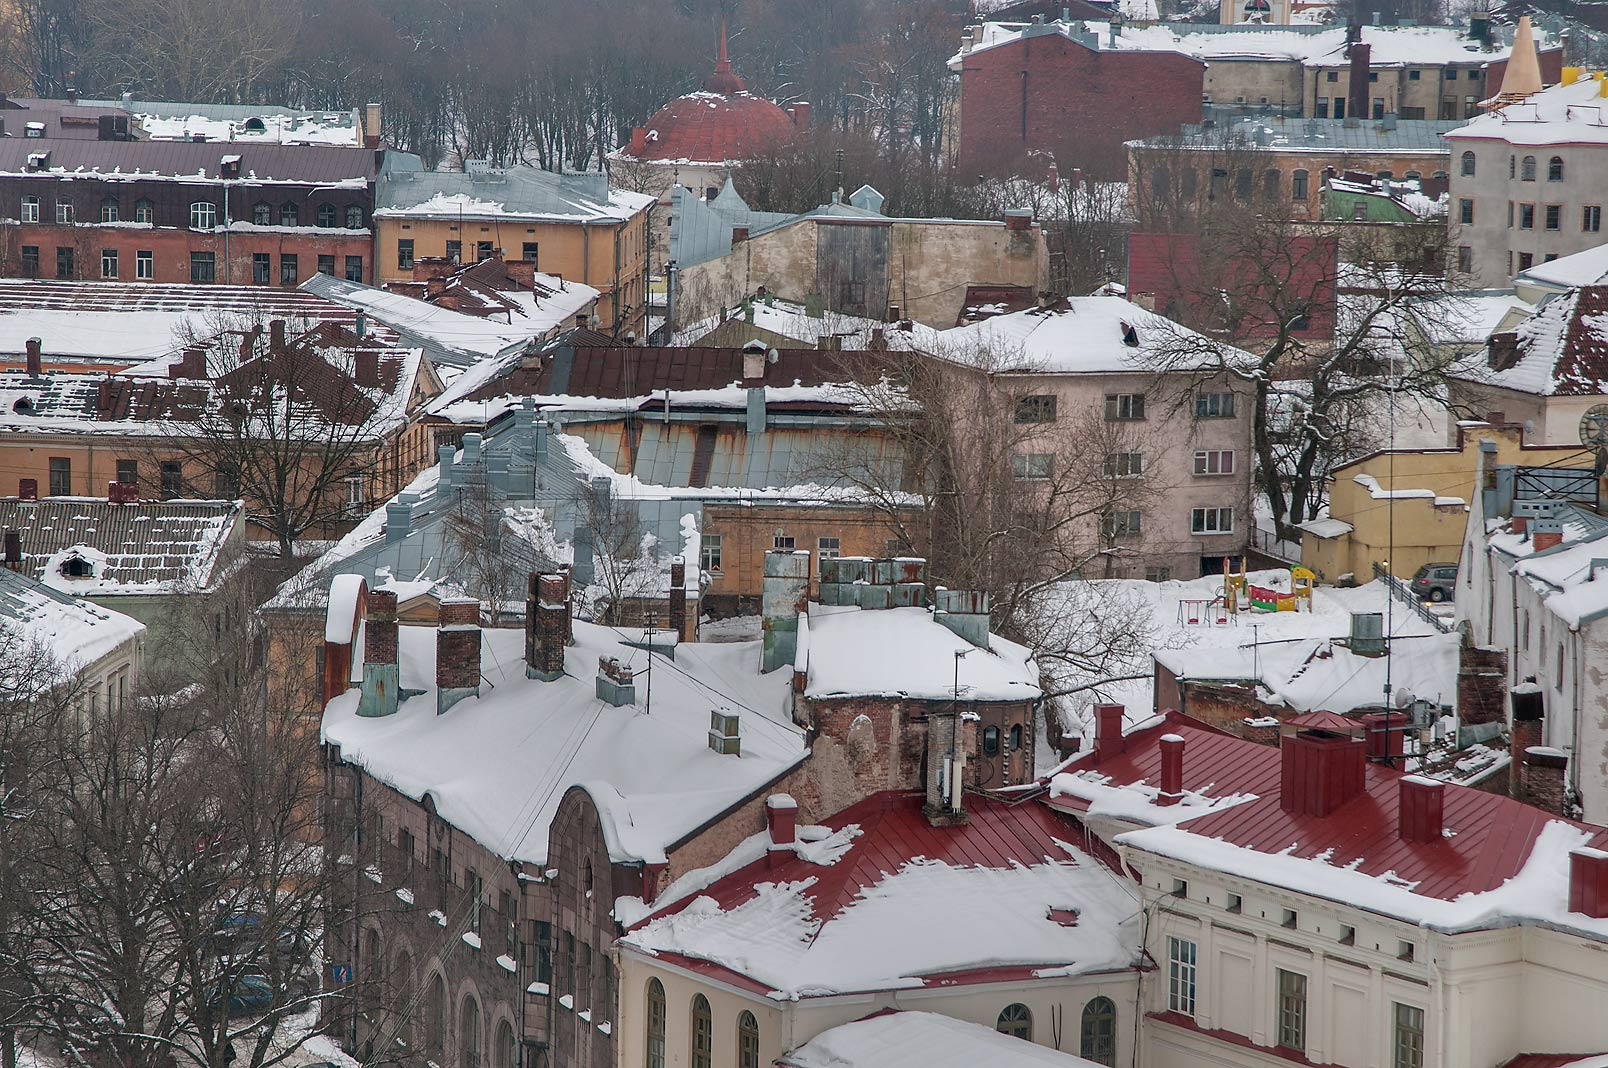 Roofs of Old City from St. Olaf Tower of Vyborg Castle. Vyborg, Russia